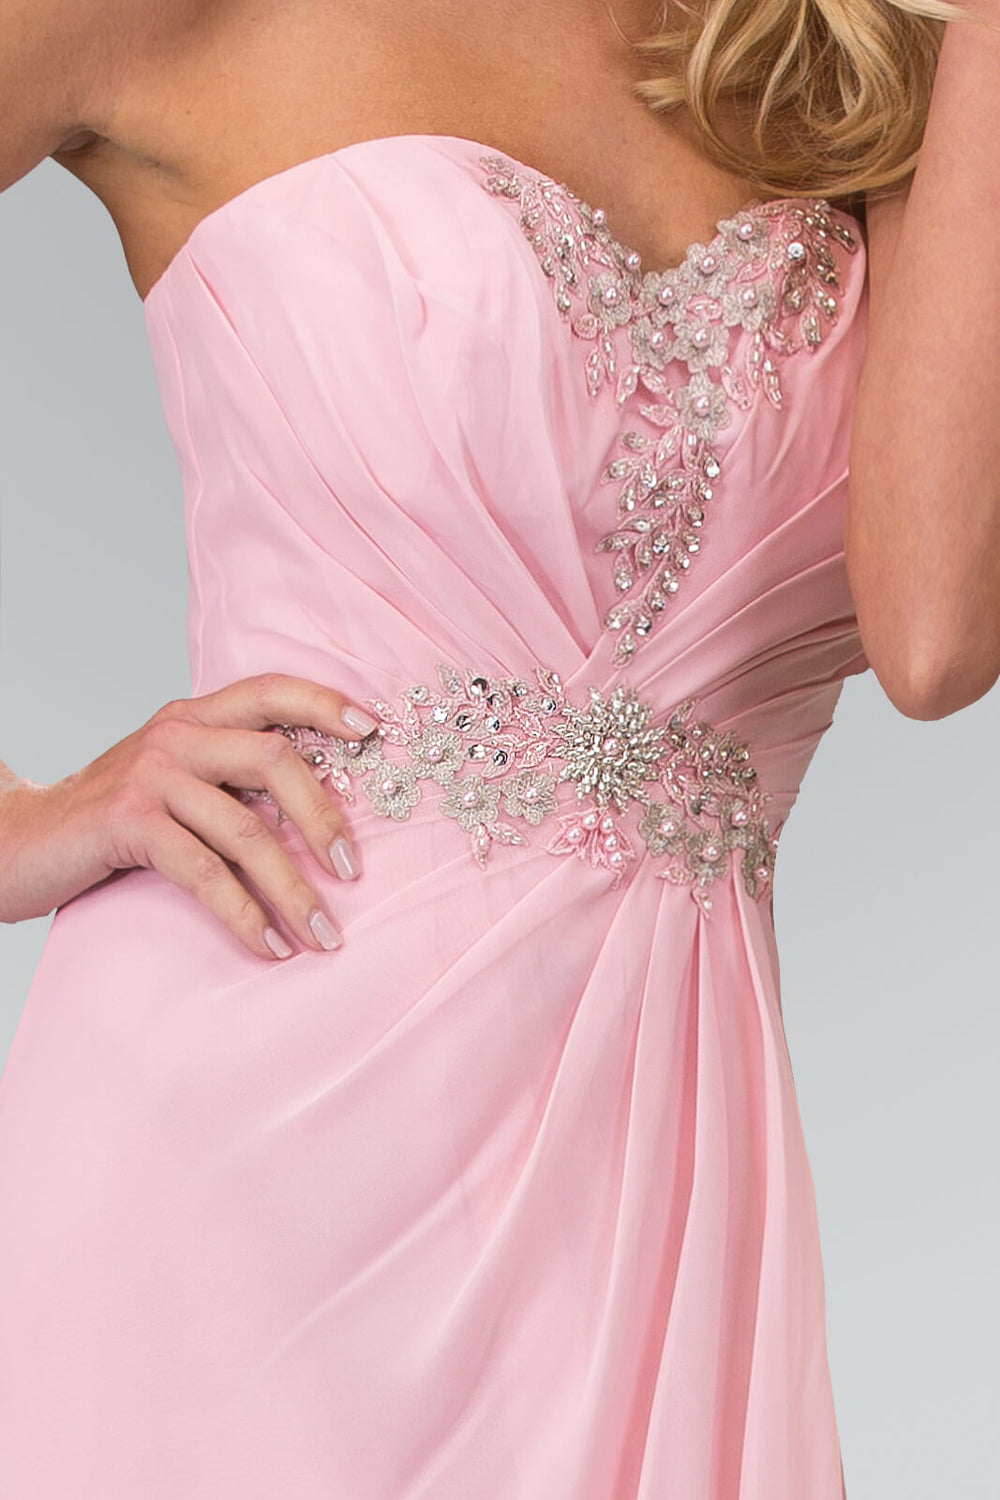 Strapless Sweetheart Long Formal Dress - The Dress Outlet Pink